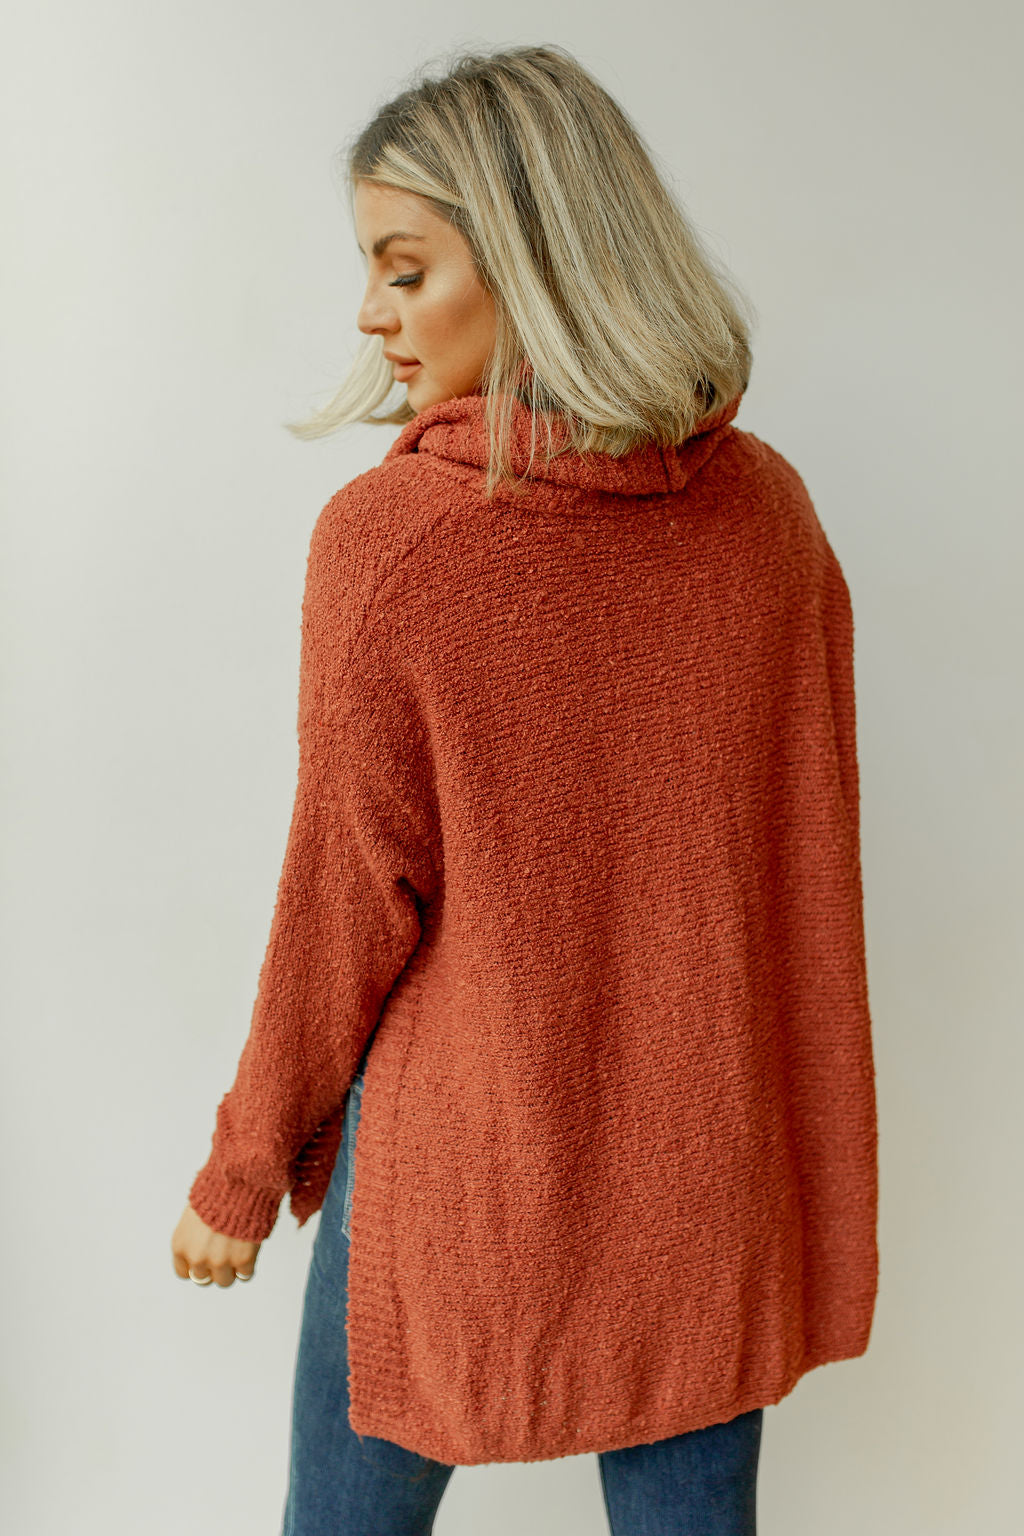 turning leaves sweater